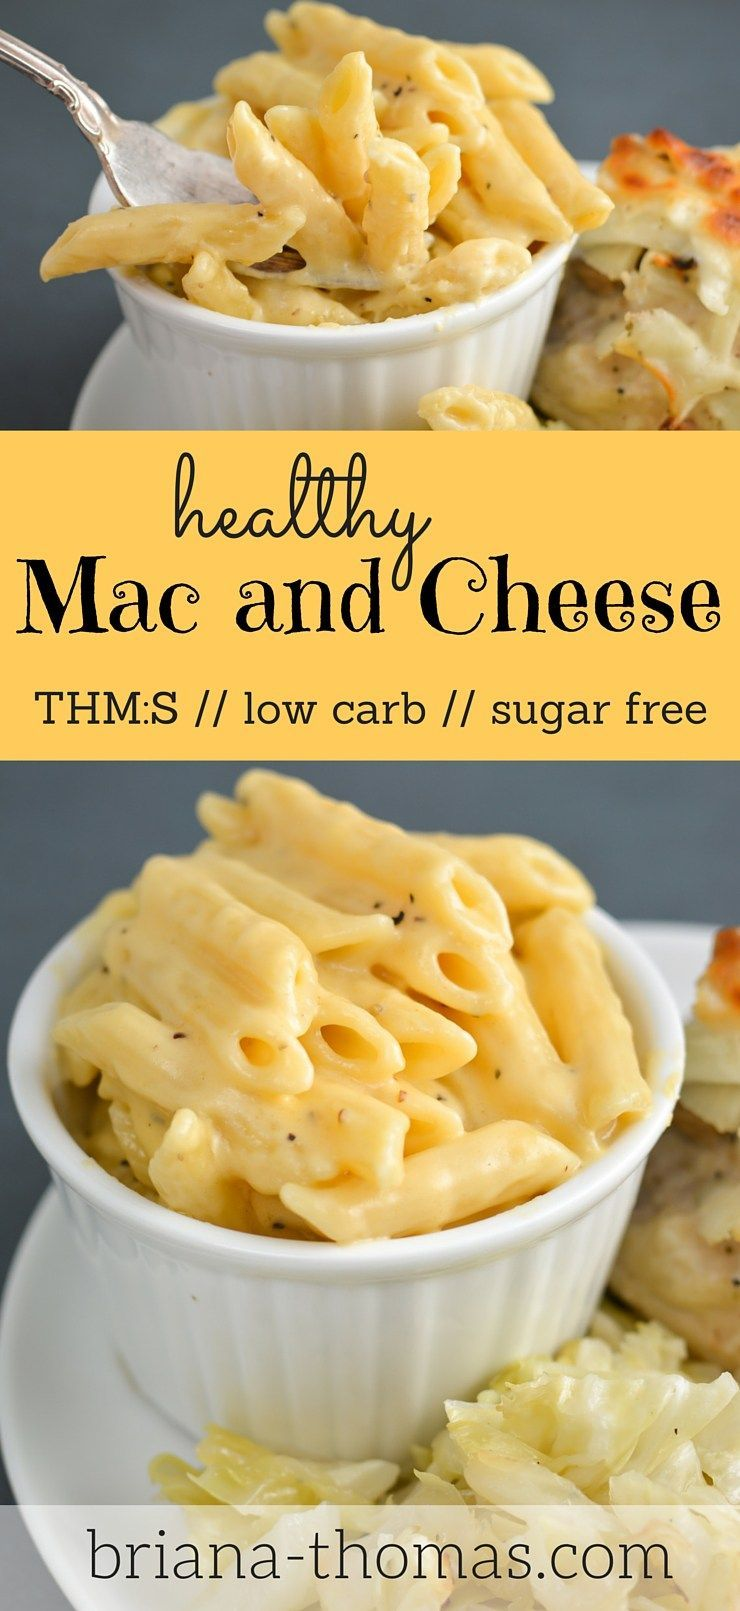 Mac and Cheese | Briana Thomas Mac and Cheese | Briana Thomas,